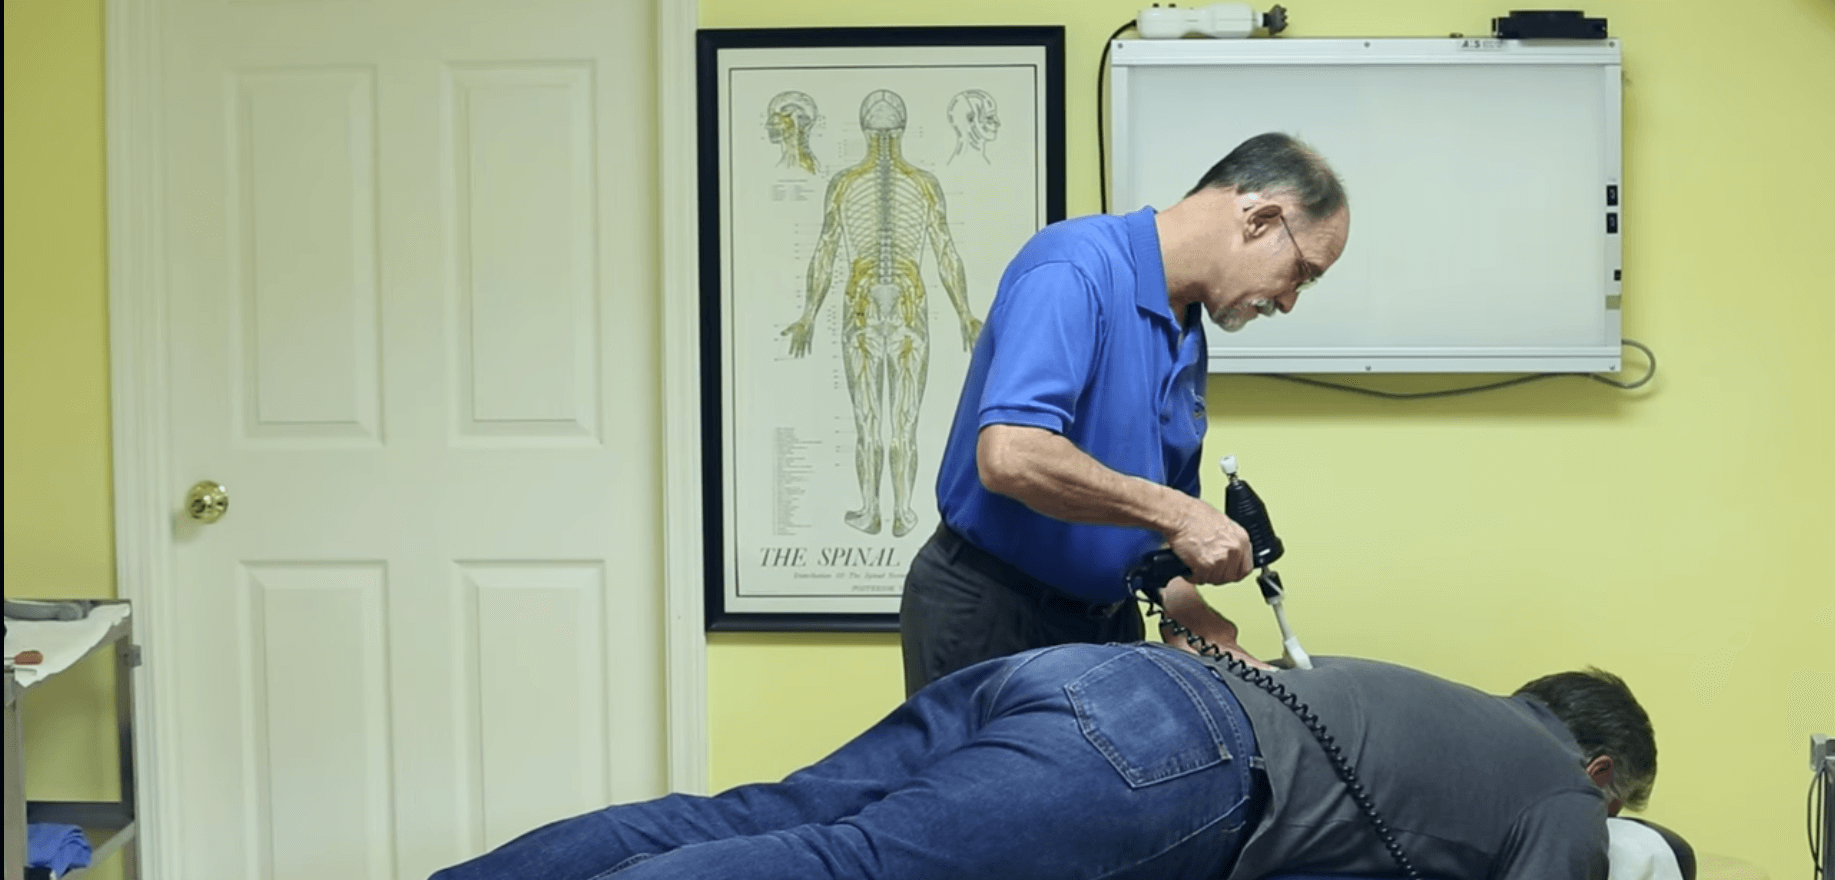 dr. chris helping lower back pain relief for patient